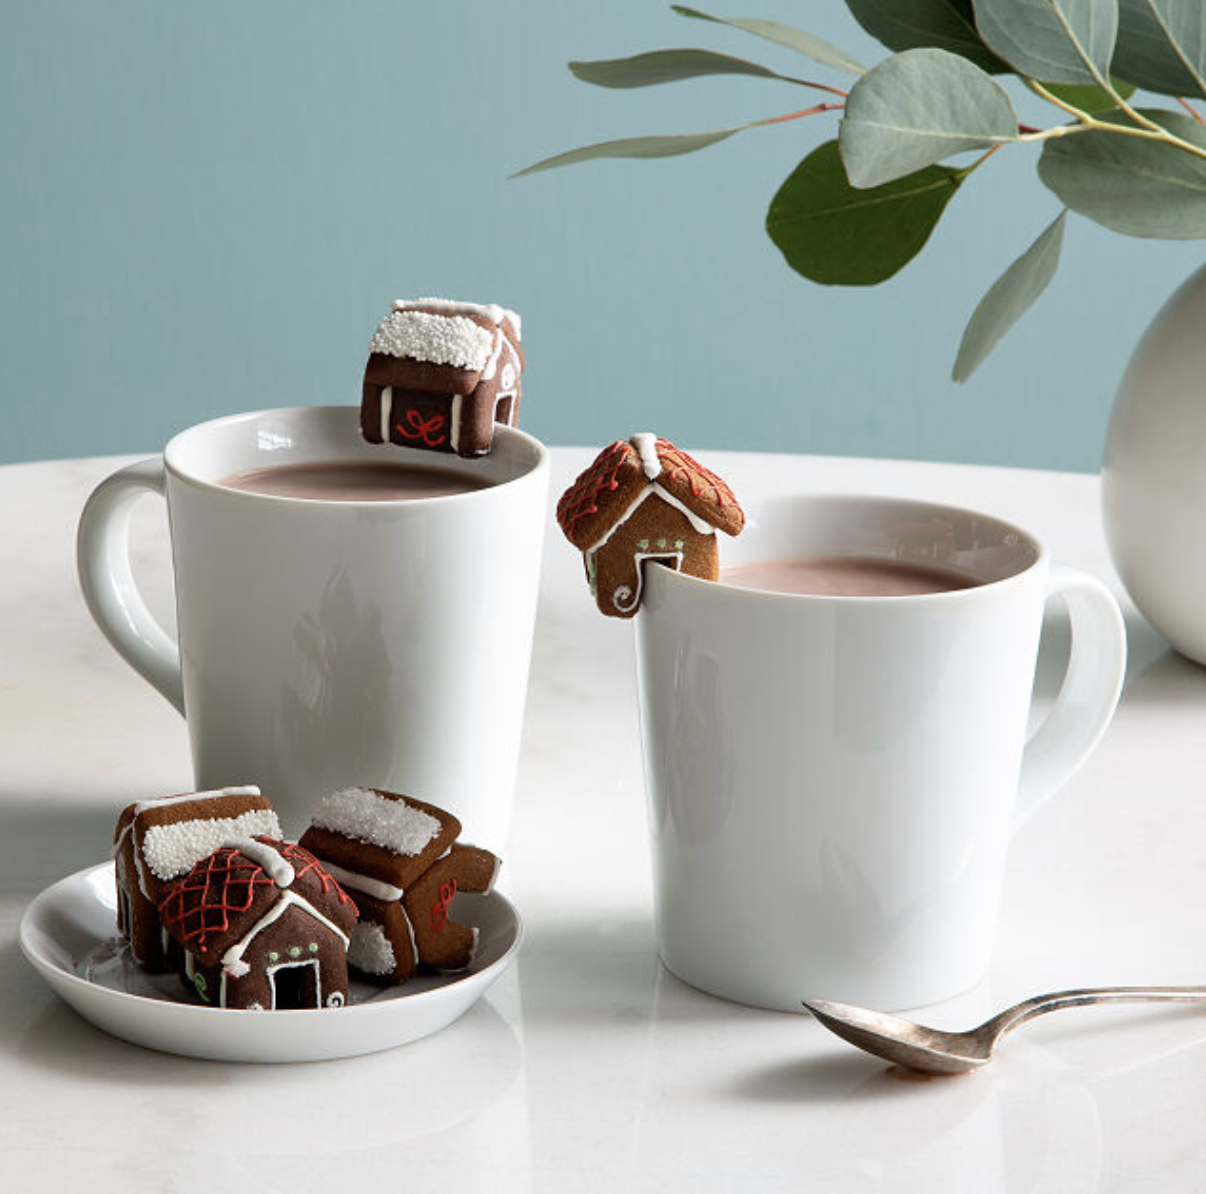 mugs that have little gingerbread houses perched on the lip of them